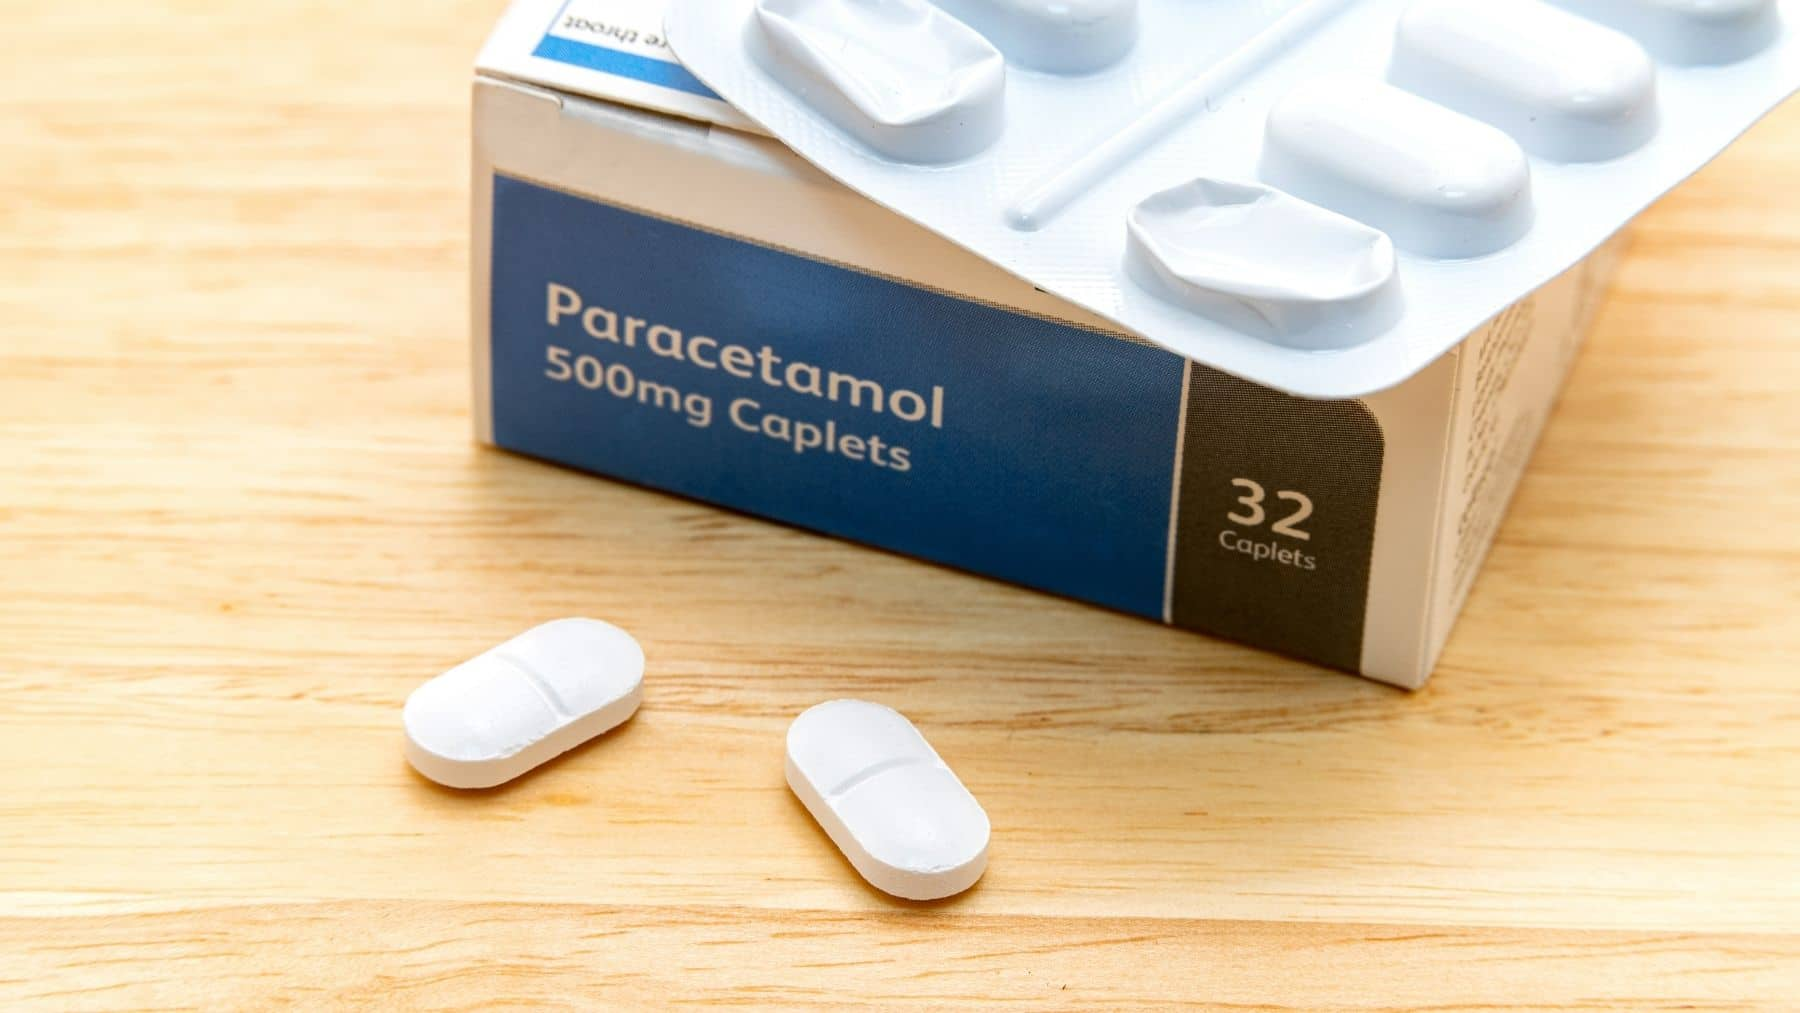 contraindications-of-paracetamol-with-side-effects